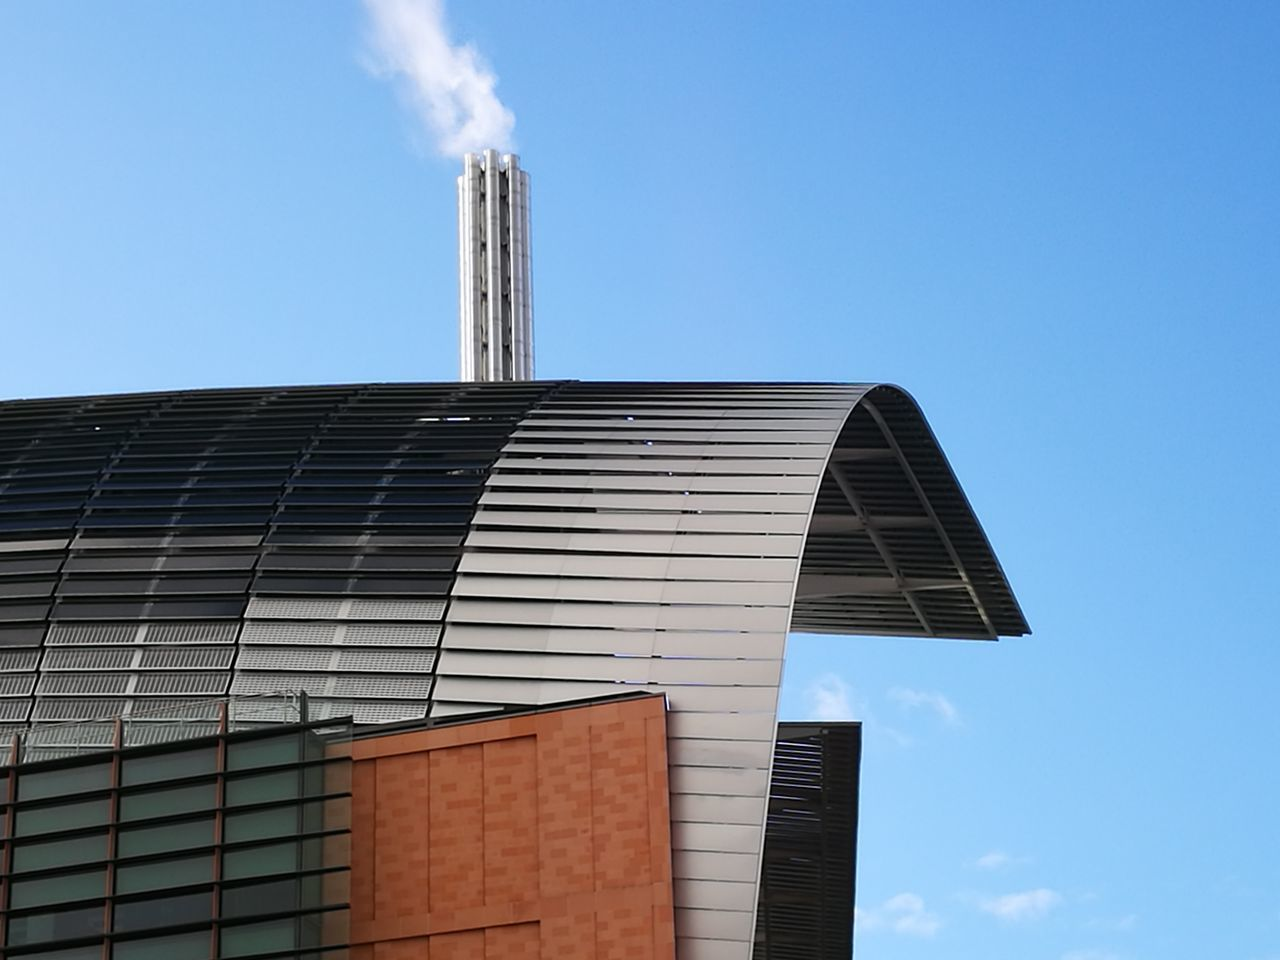 Architecture Francis Crick Institute. Sky Outdoors Building Exterior No People Day Built Structure Built_Structure Buildingstyles Modern Roof Structure Low Angle View Chimneys &beautiful Skys